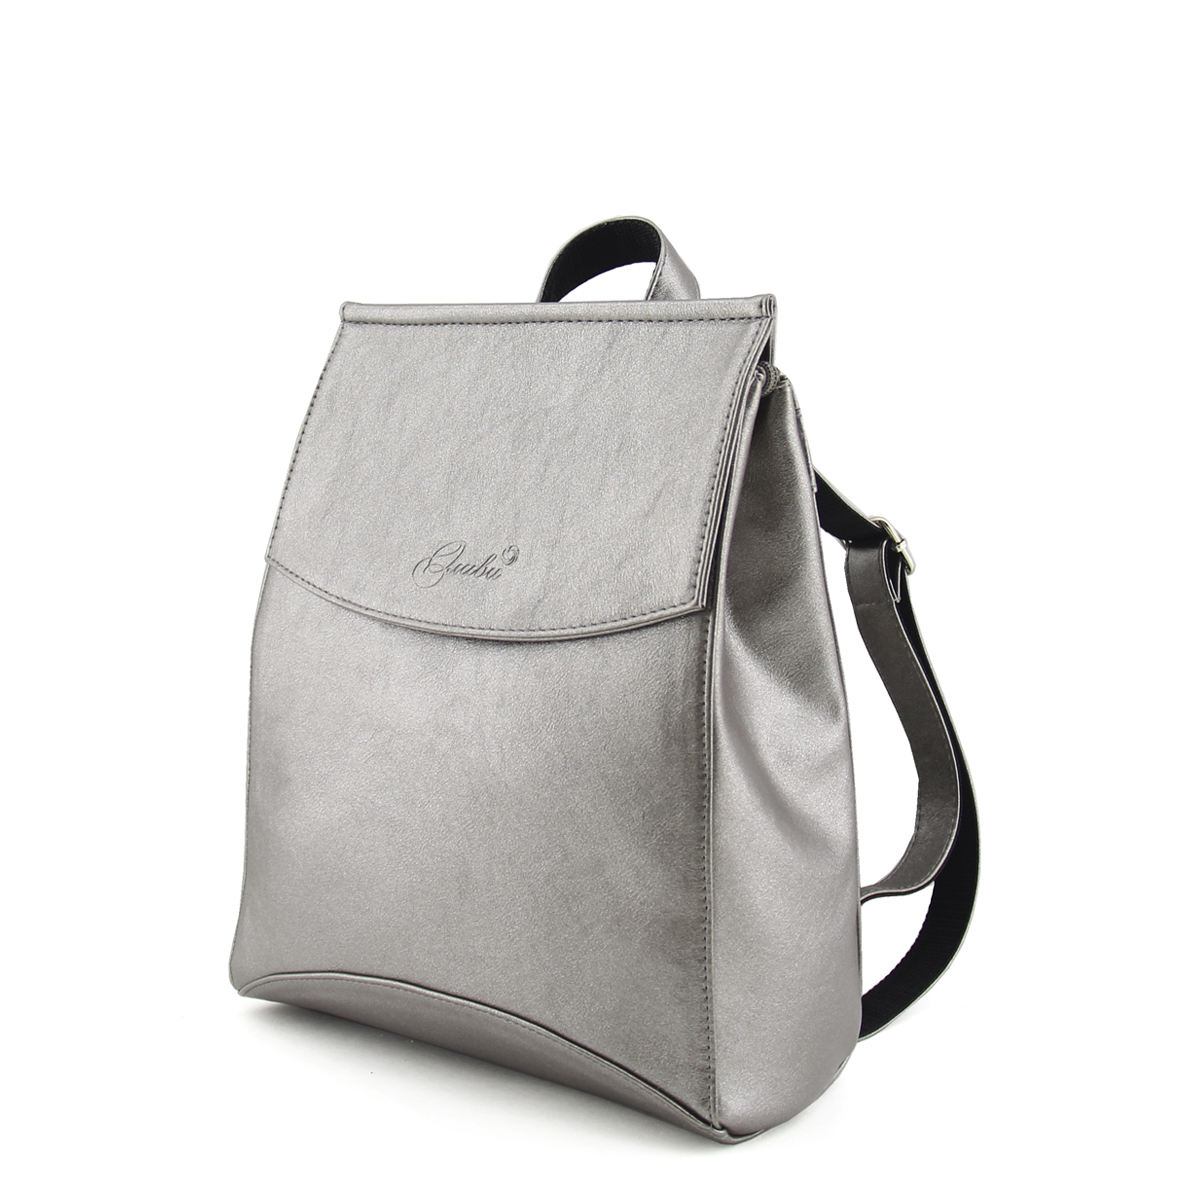 Medium-sized artificial leather backpack with two adjustable hand straps